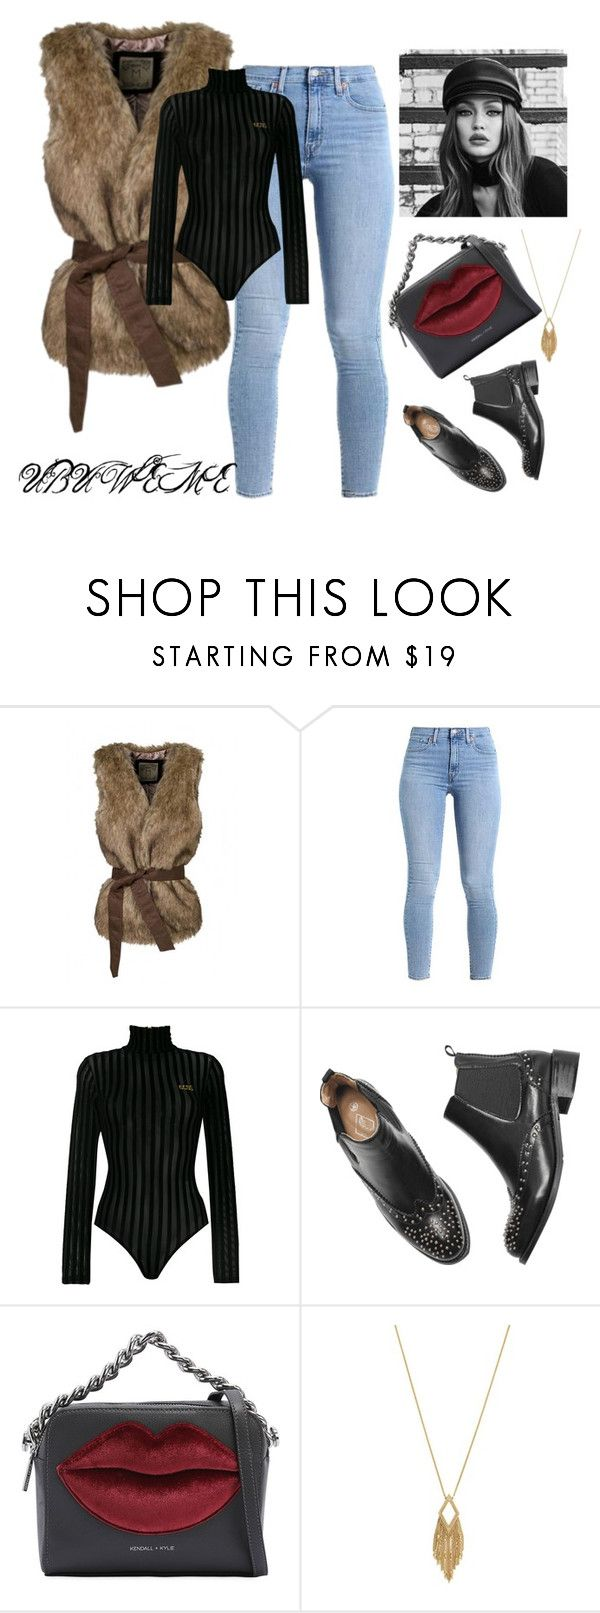 """""""FAUX FUR VEST & MESH BODYSUIT"""" by mchangwe on Polyvore featuring WithChic, GCDS, Kendall + Kylie, Jessica Simpson and Maybelline"""